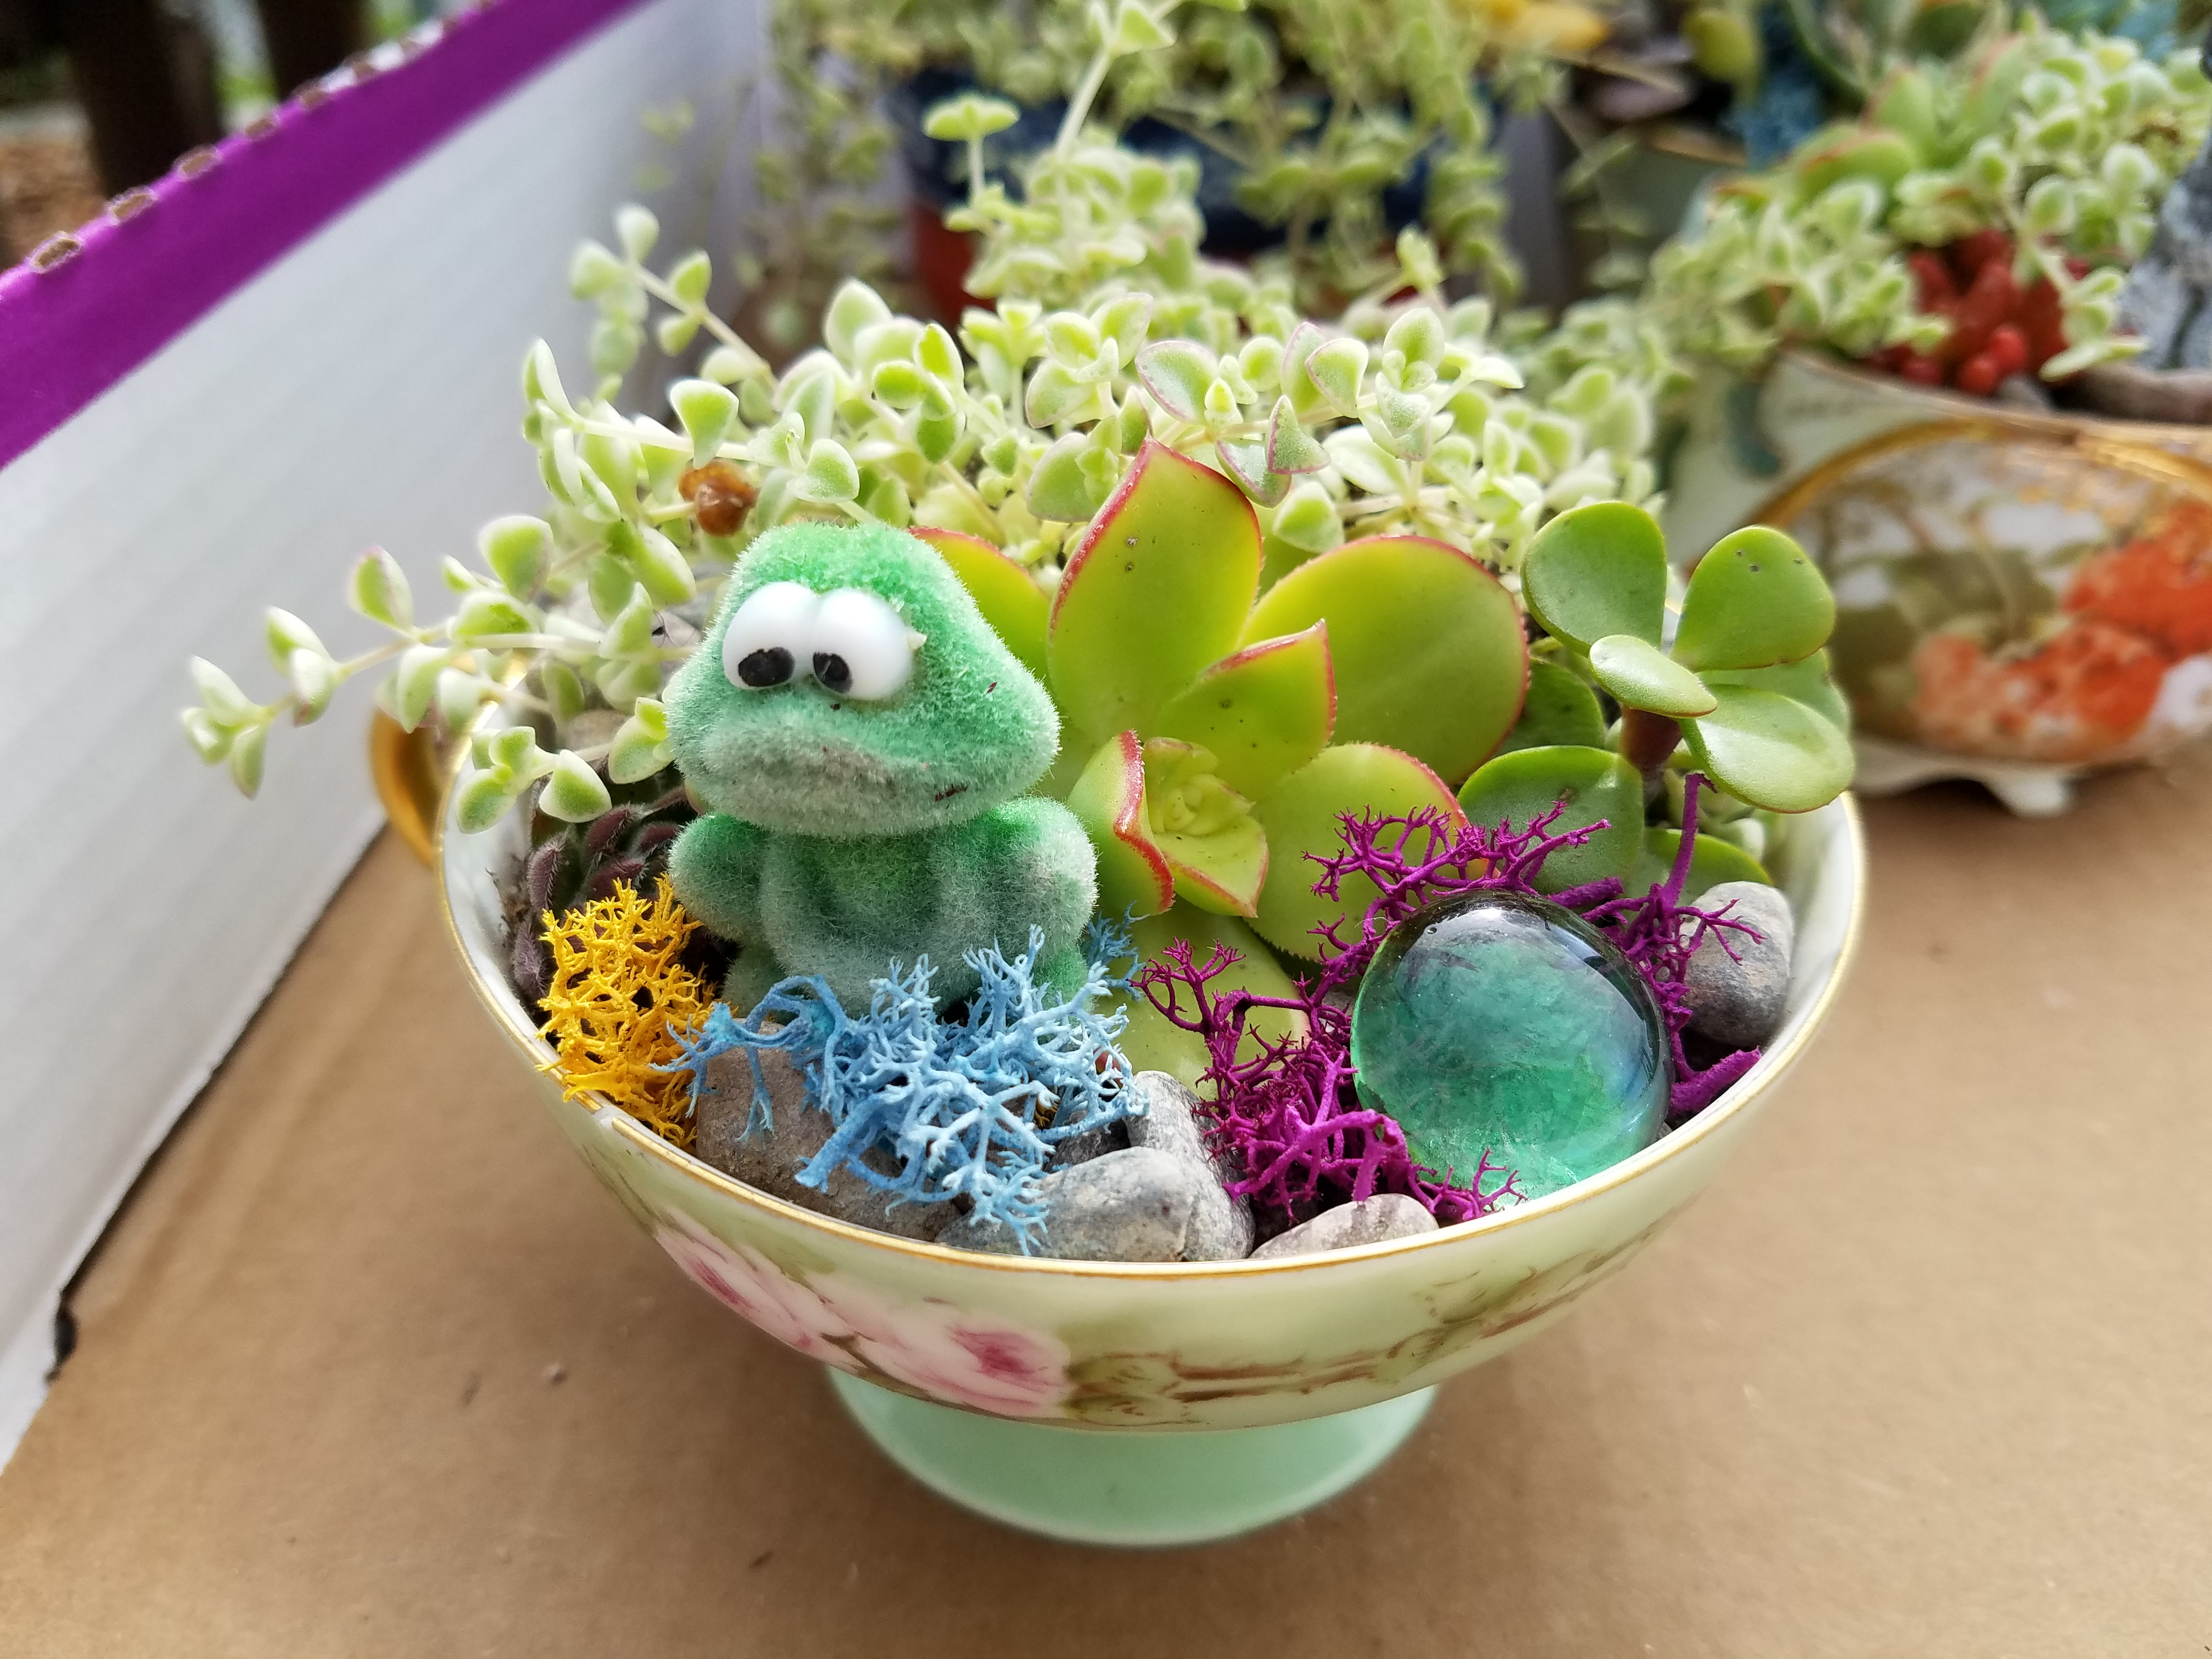 Miniature garden with frog